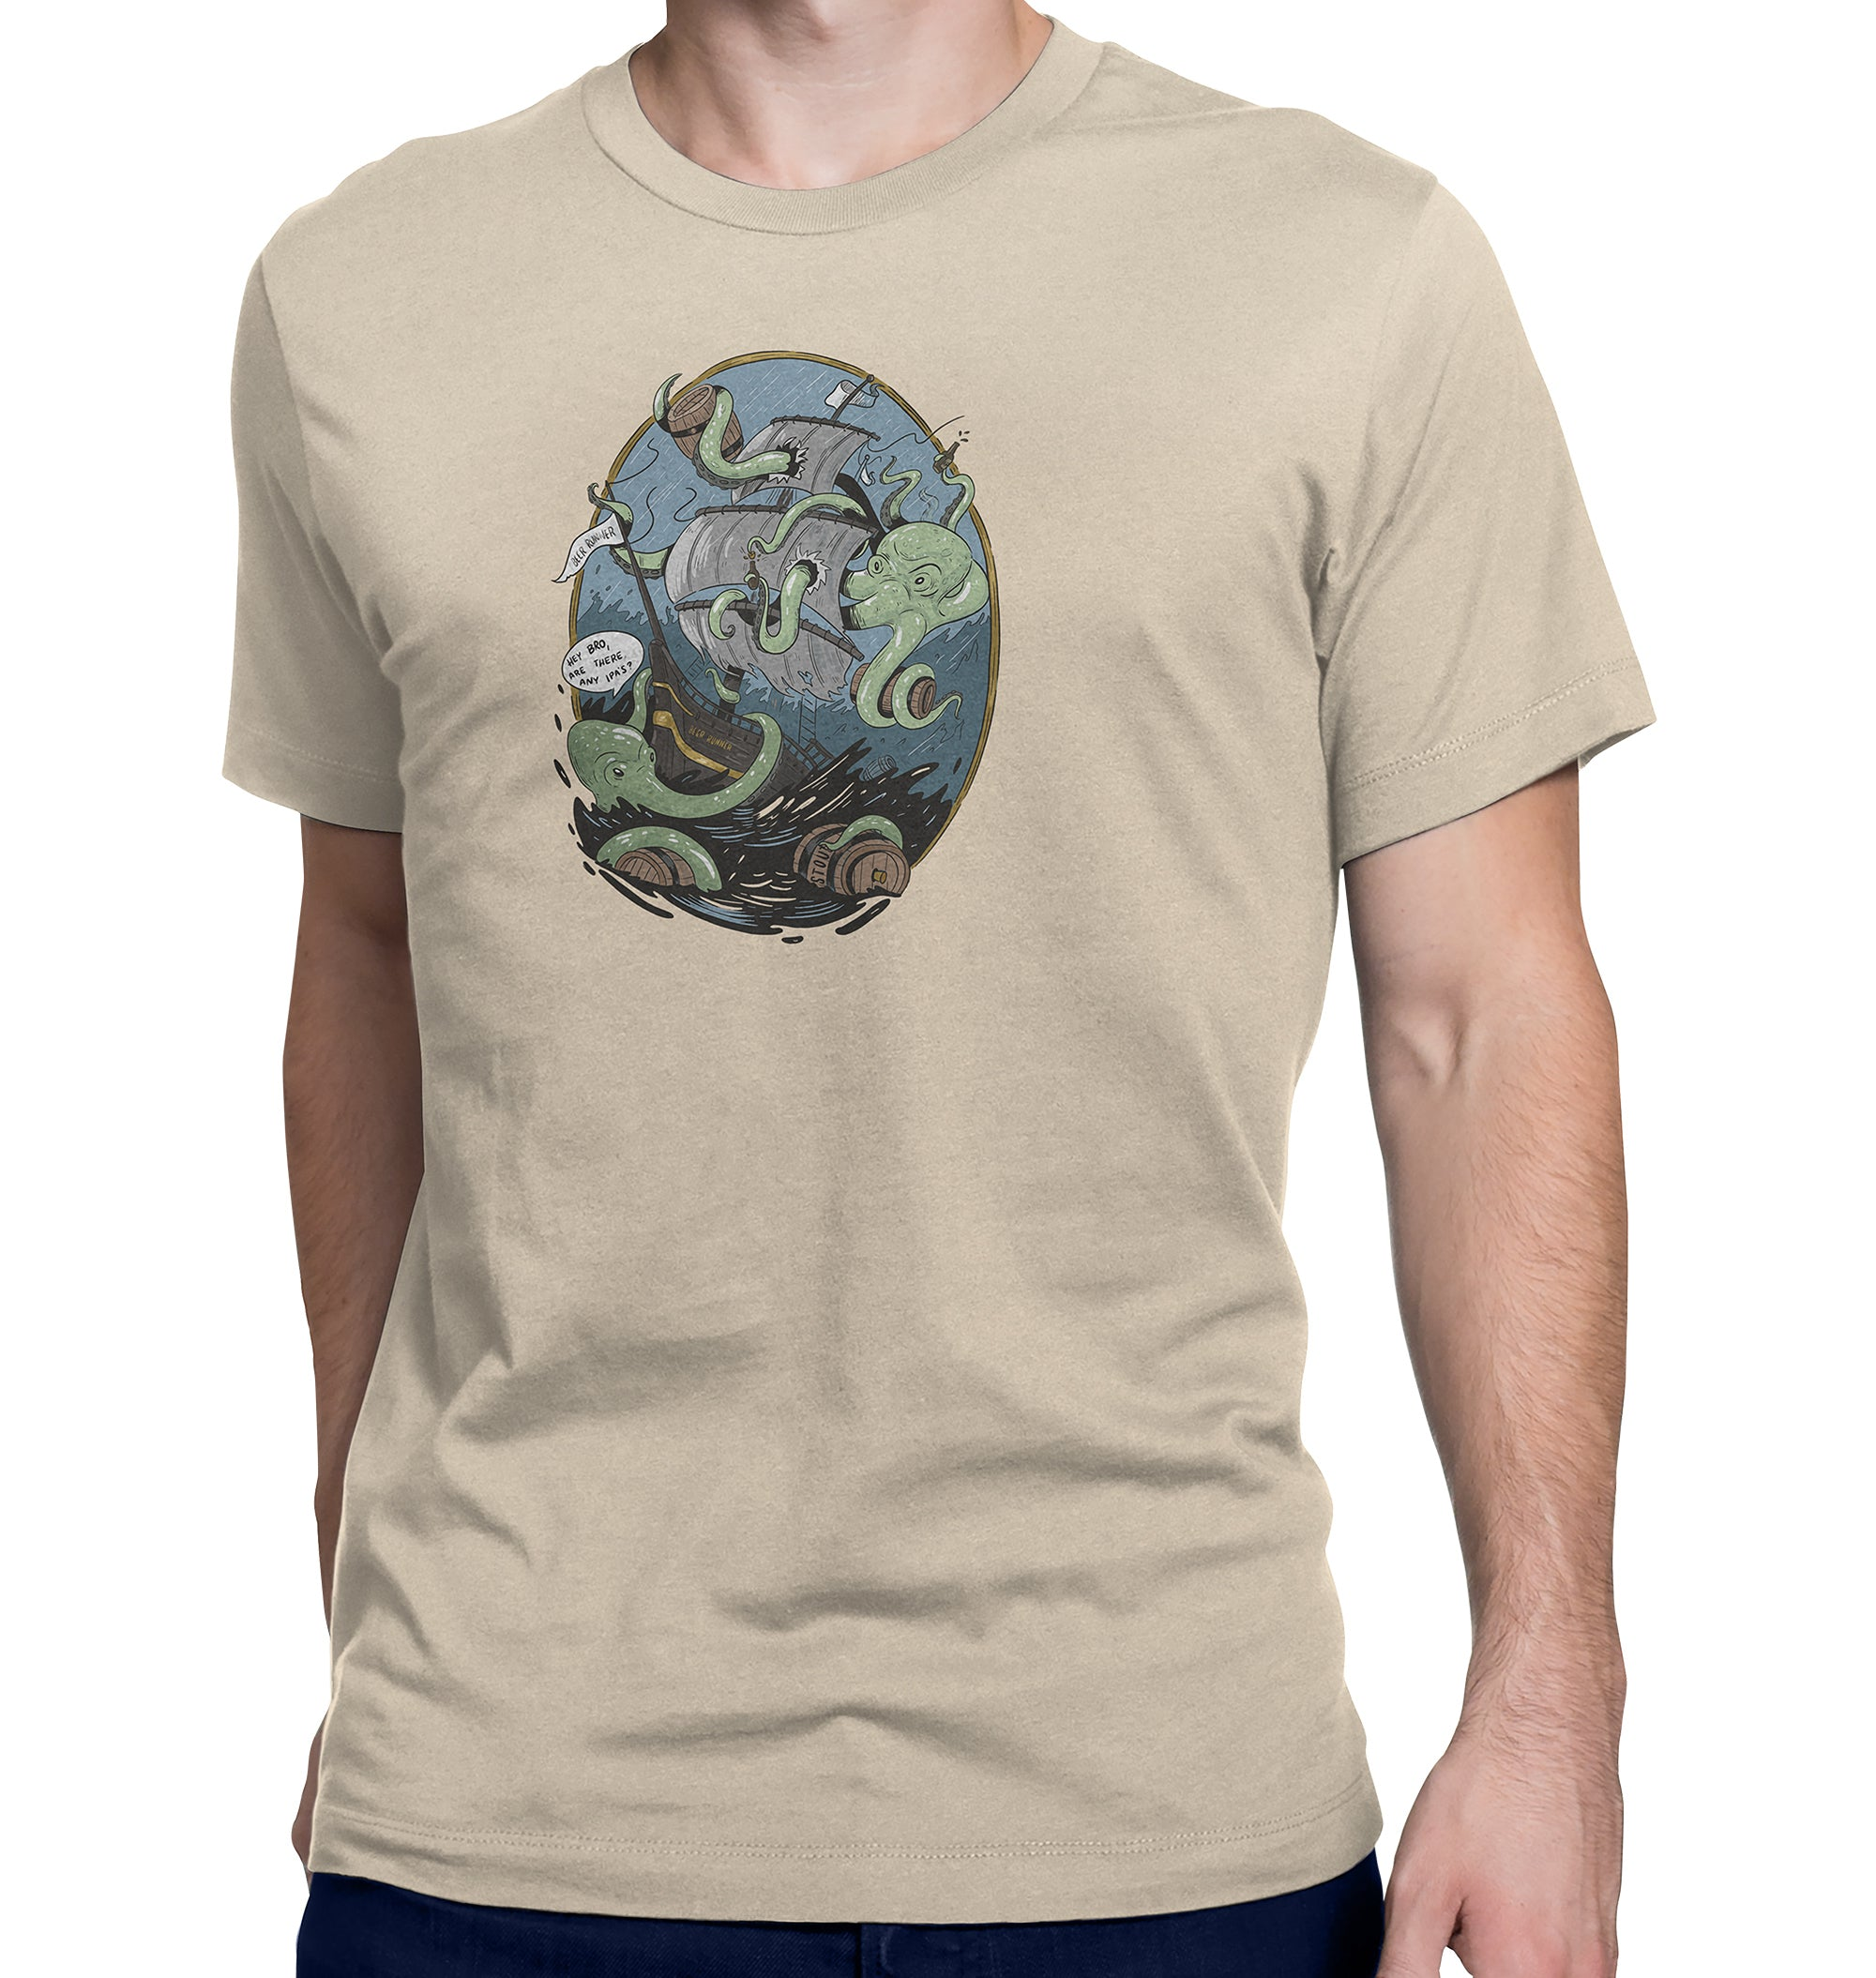 Giant Octopus Wants Beer Tan T-Shirt on Model